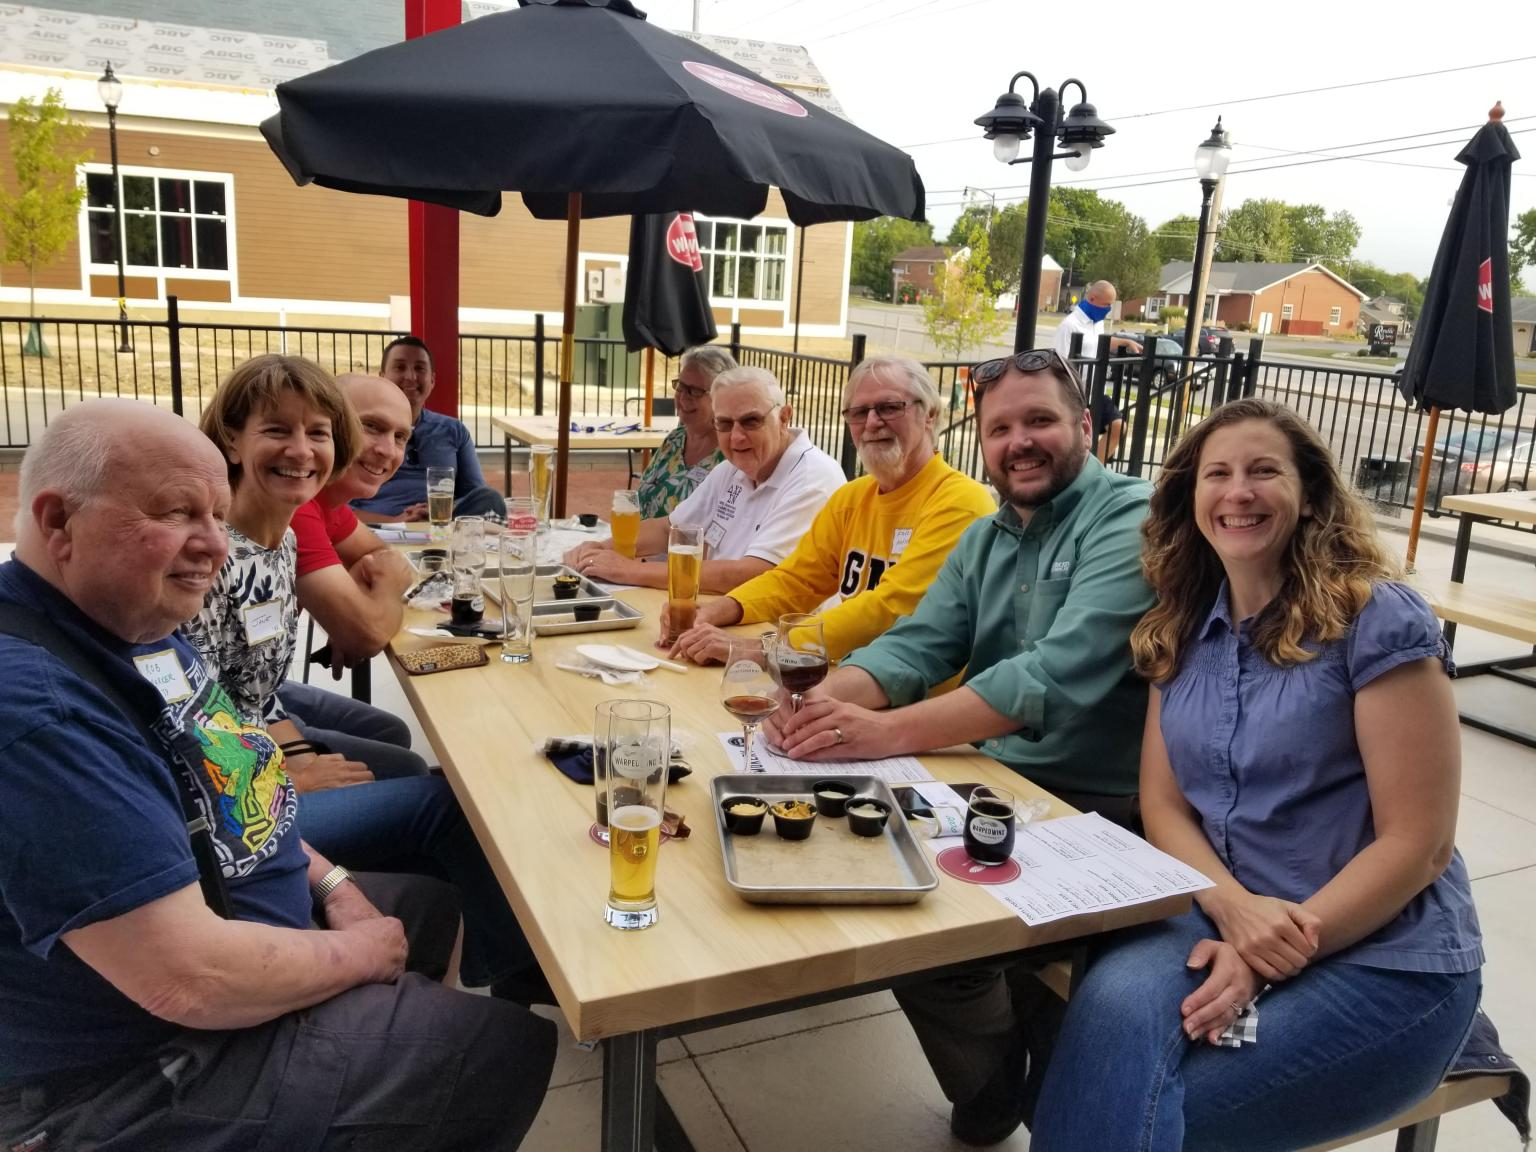 Alumni Connections Week 2020 - Springboro Warped Wing Brewery